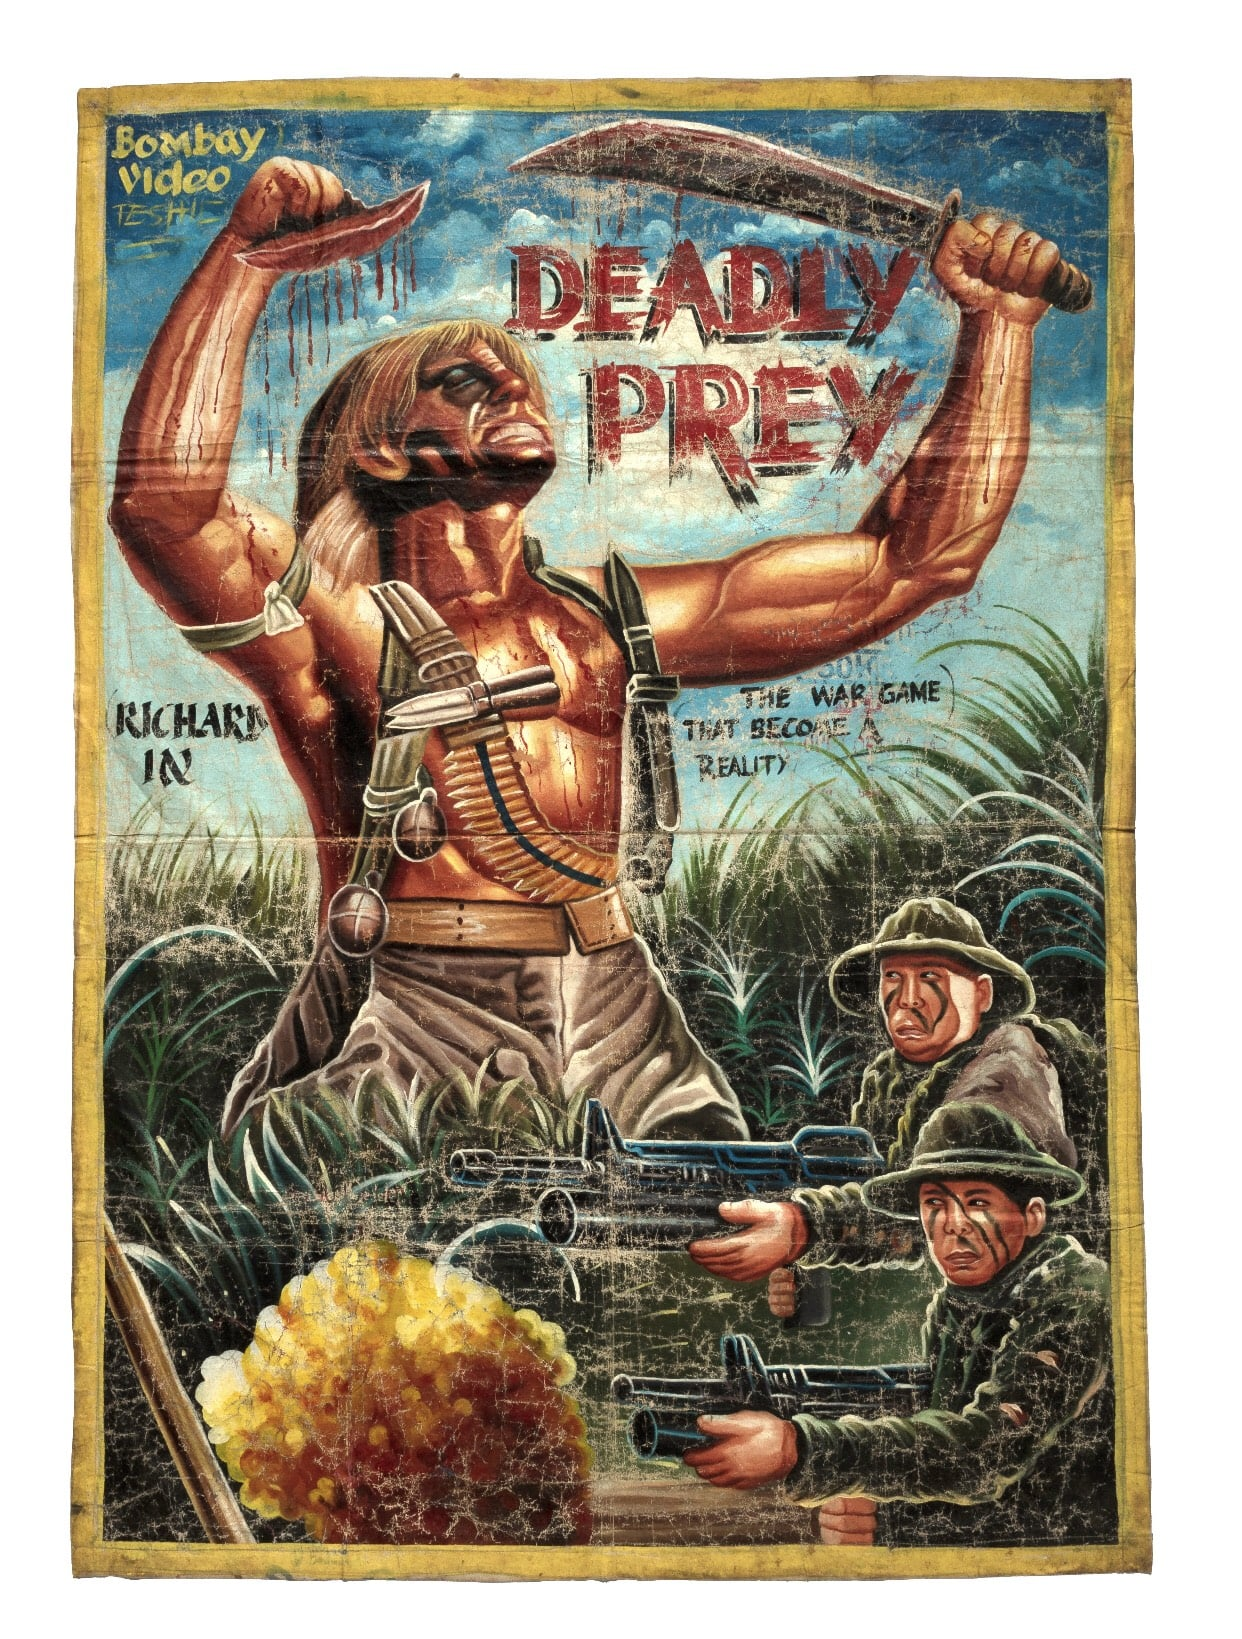 - Deadly Prey Gallery returns to GLT in February with an exhibit showcasing hand painted Ghanaian movie posters, sign boards and sculptures.